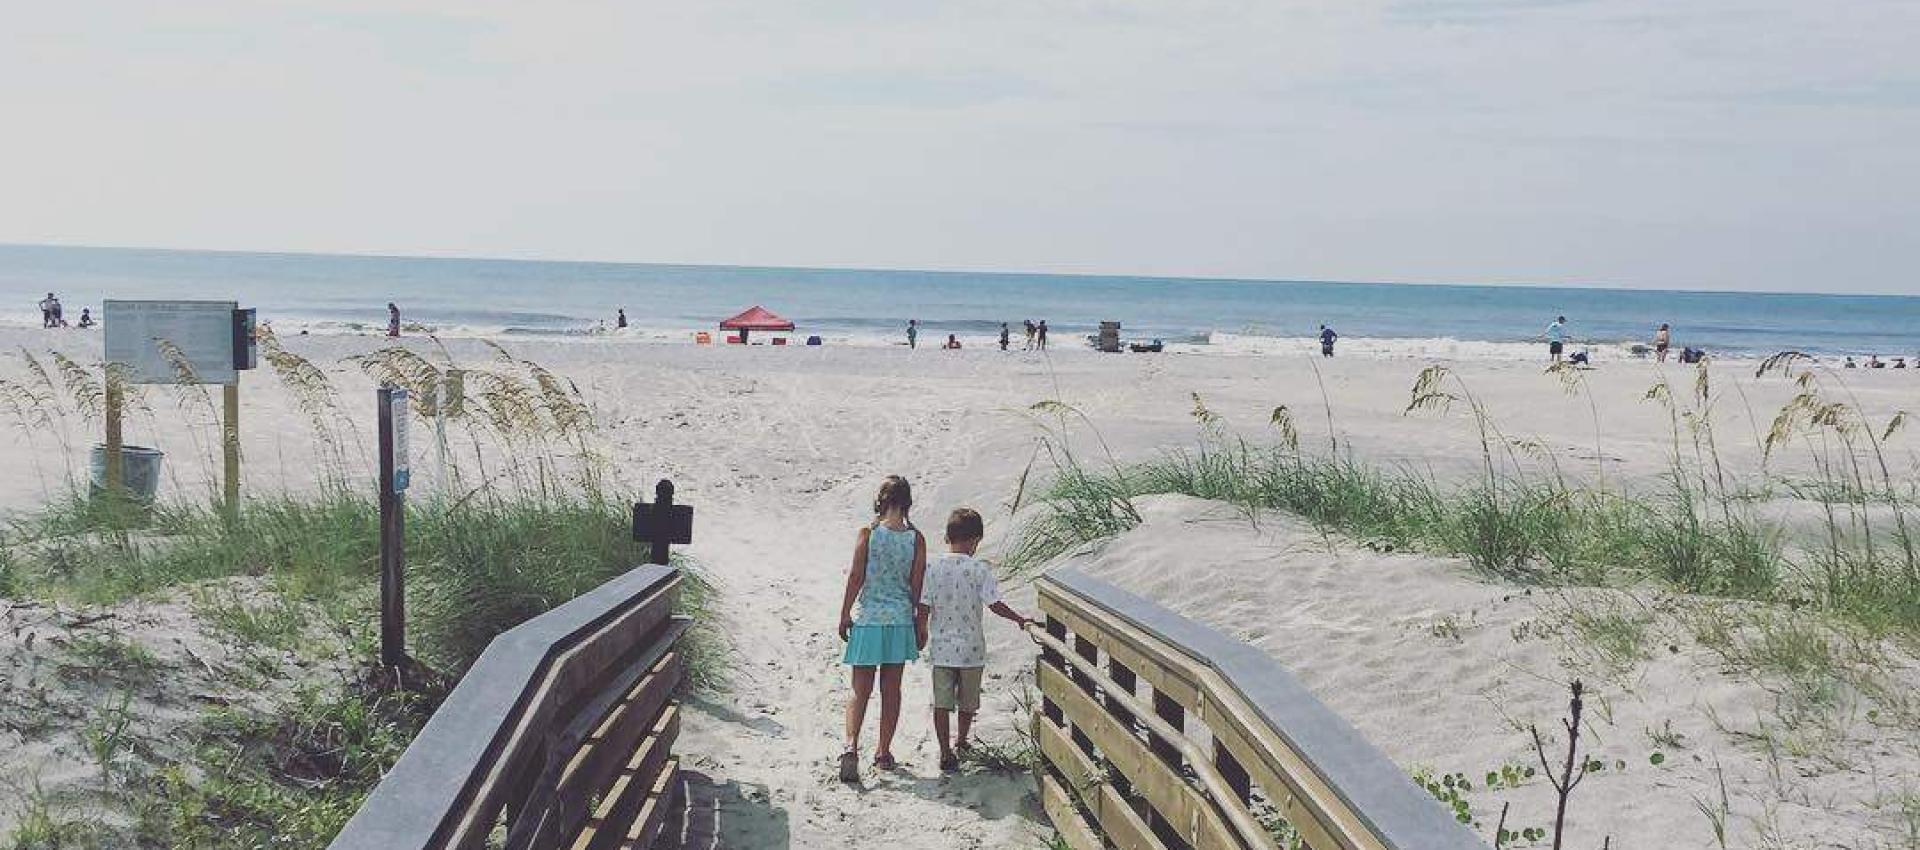 How to Have a Family-Friendly Spring Break on Hilton Head Island.